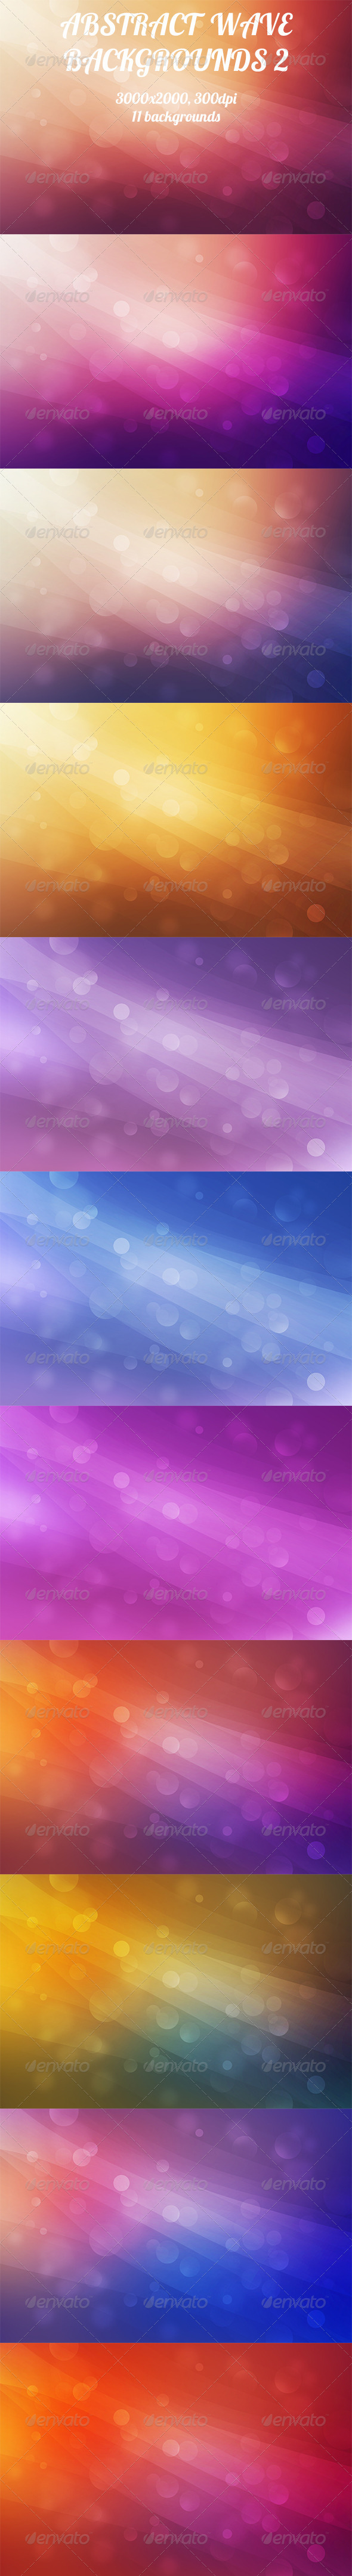 GraphicRiver Abstract Wave Backgrounds 2 8529967